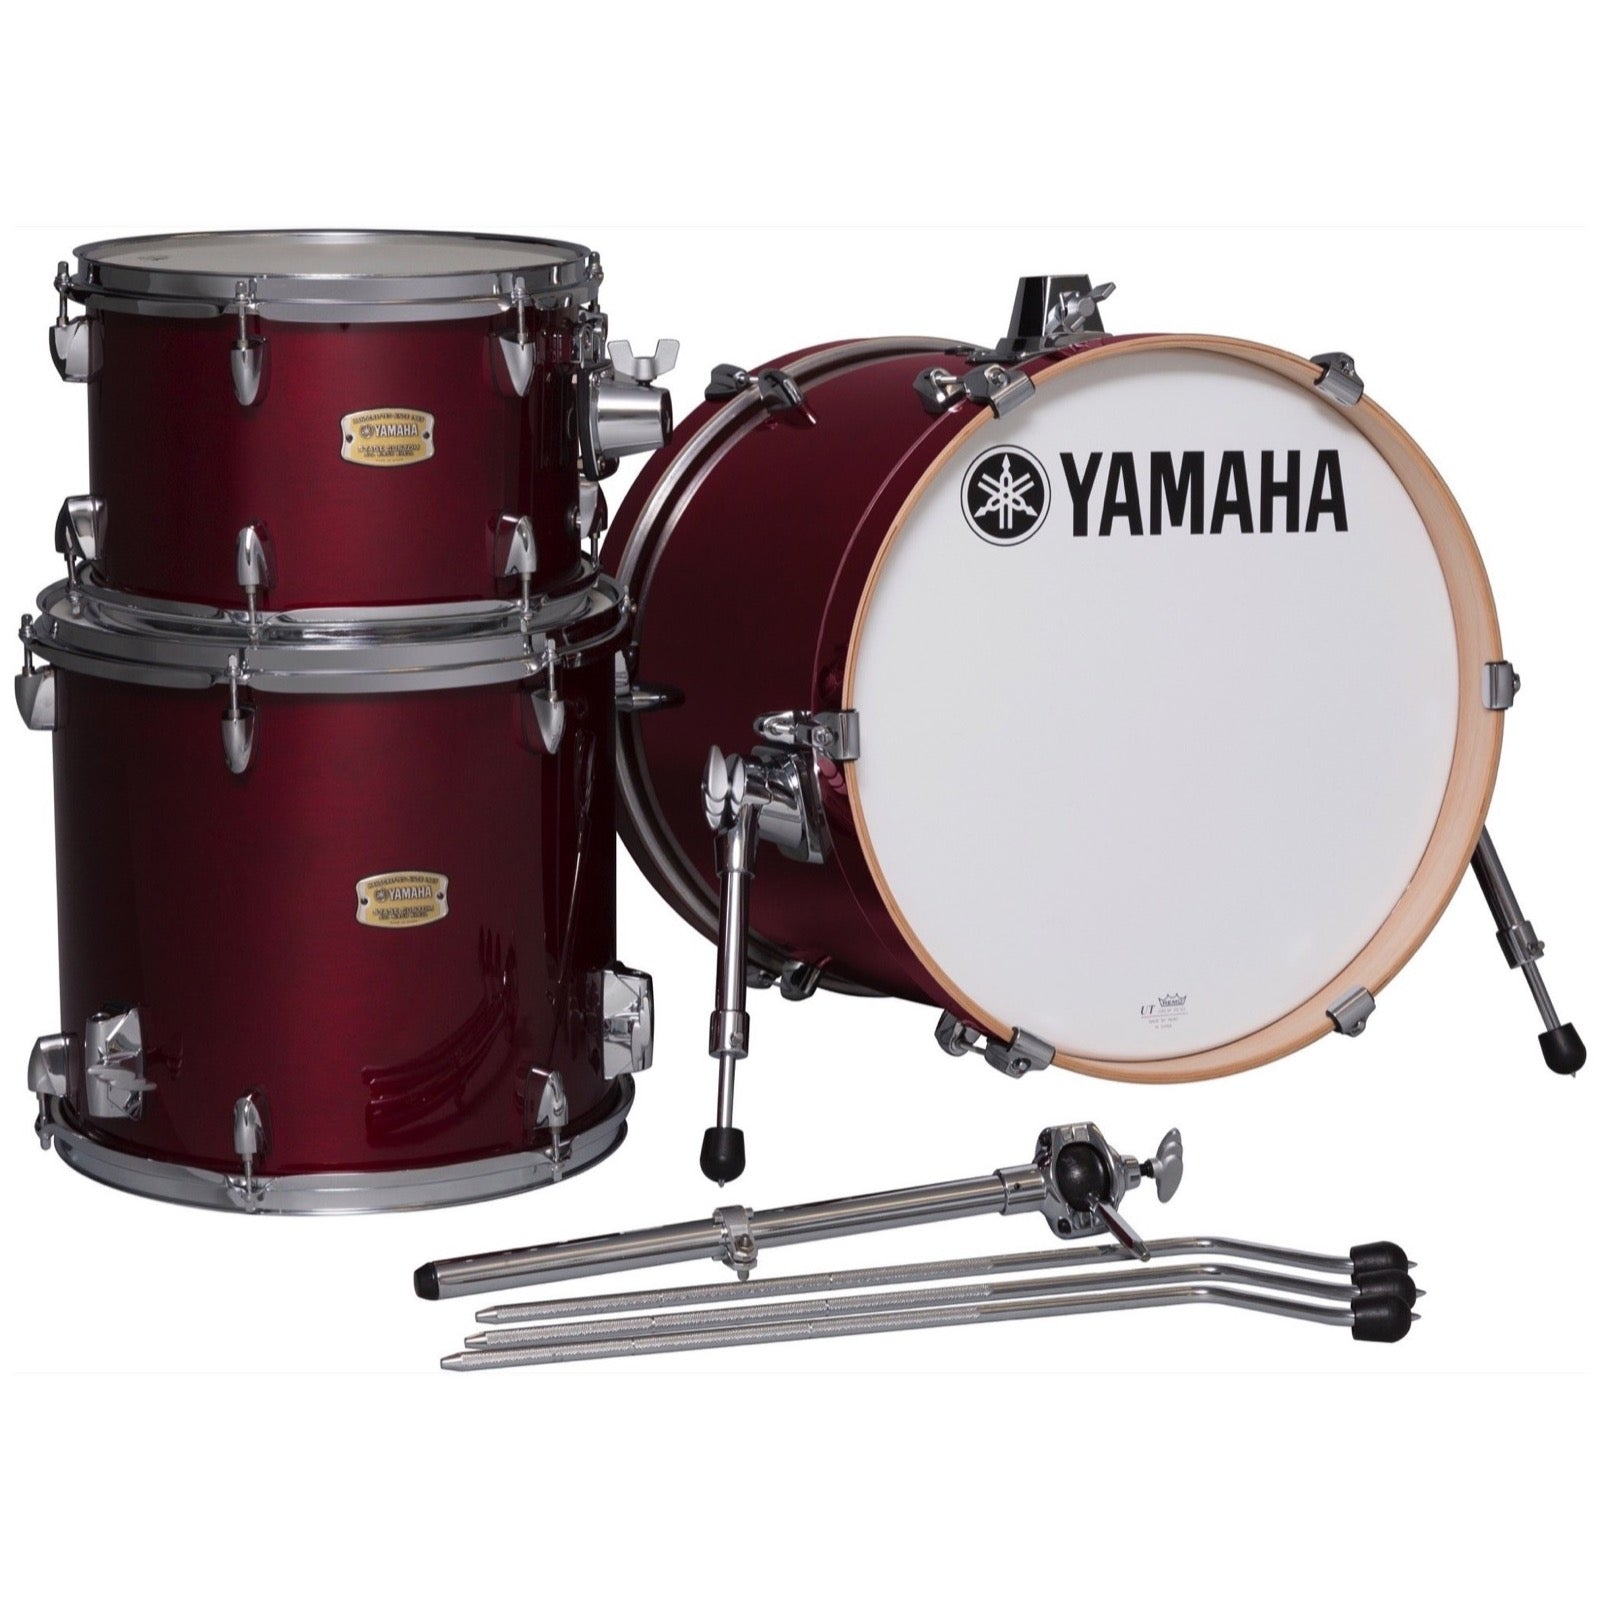 Yamaha SBP8F3 Stage Custom Bop Drum Shell Kit, 3-Piece, Cranberry Red